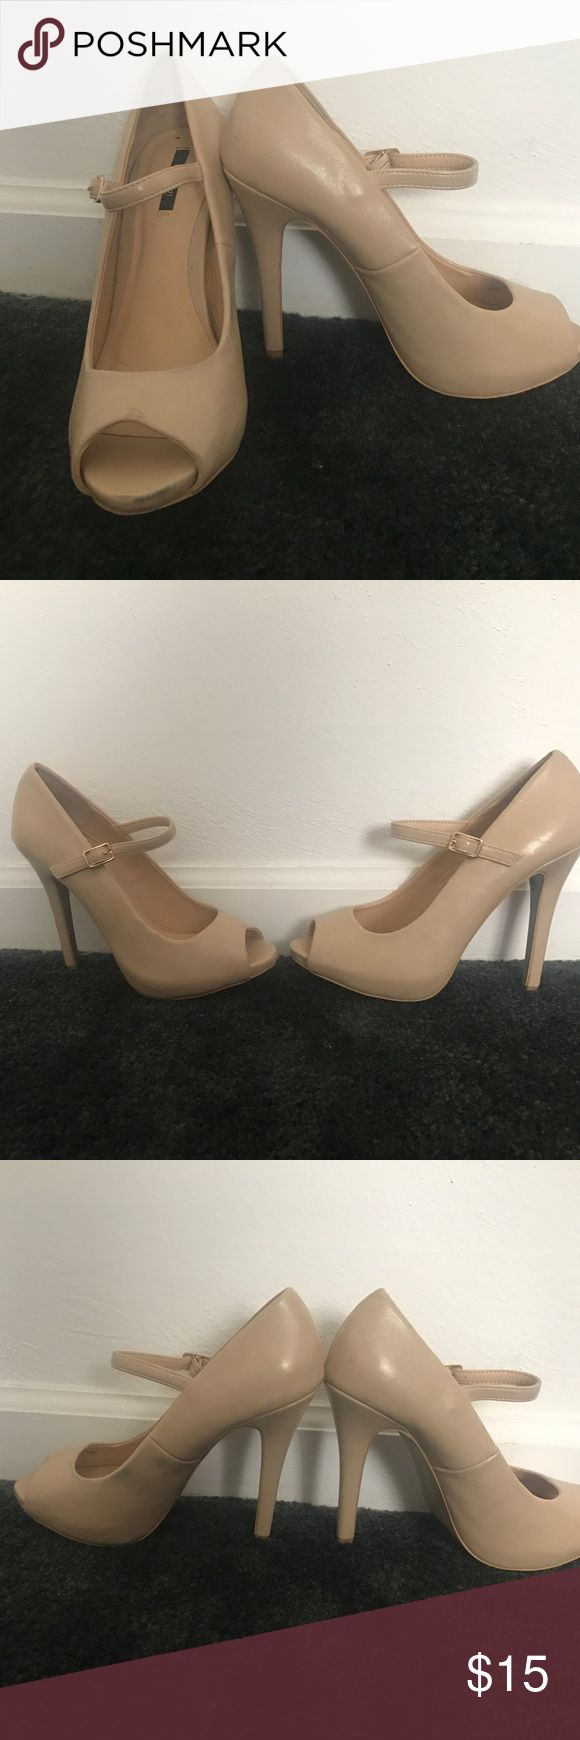 Nude peep toe platforms Cute nude peep toe platform heels! Only worn once, slight discoloration on inside of one but otherwise in great condition. Price reflects condition! Shoes Platforms